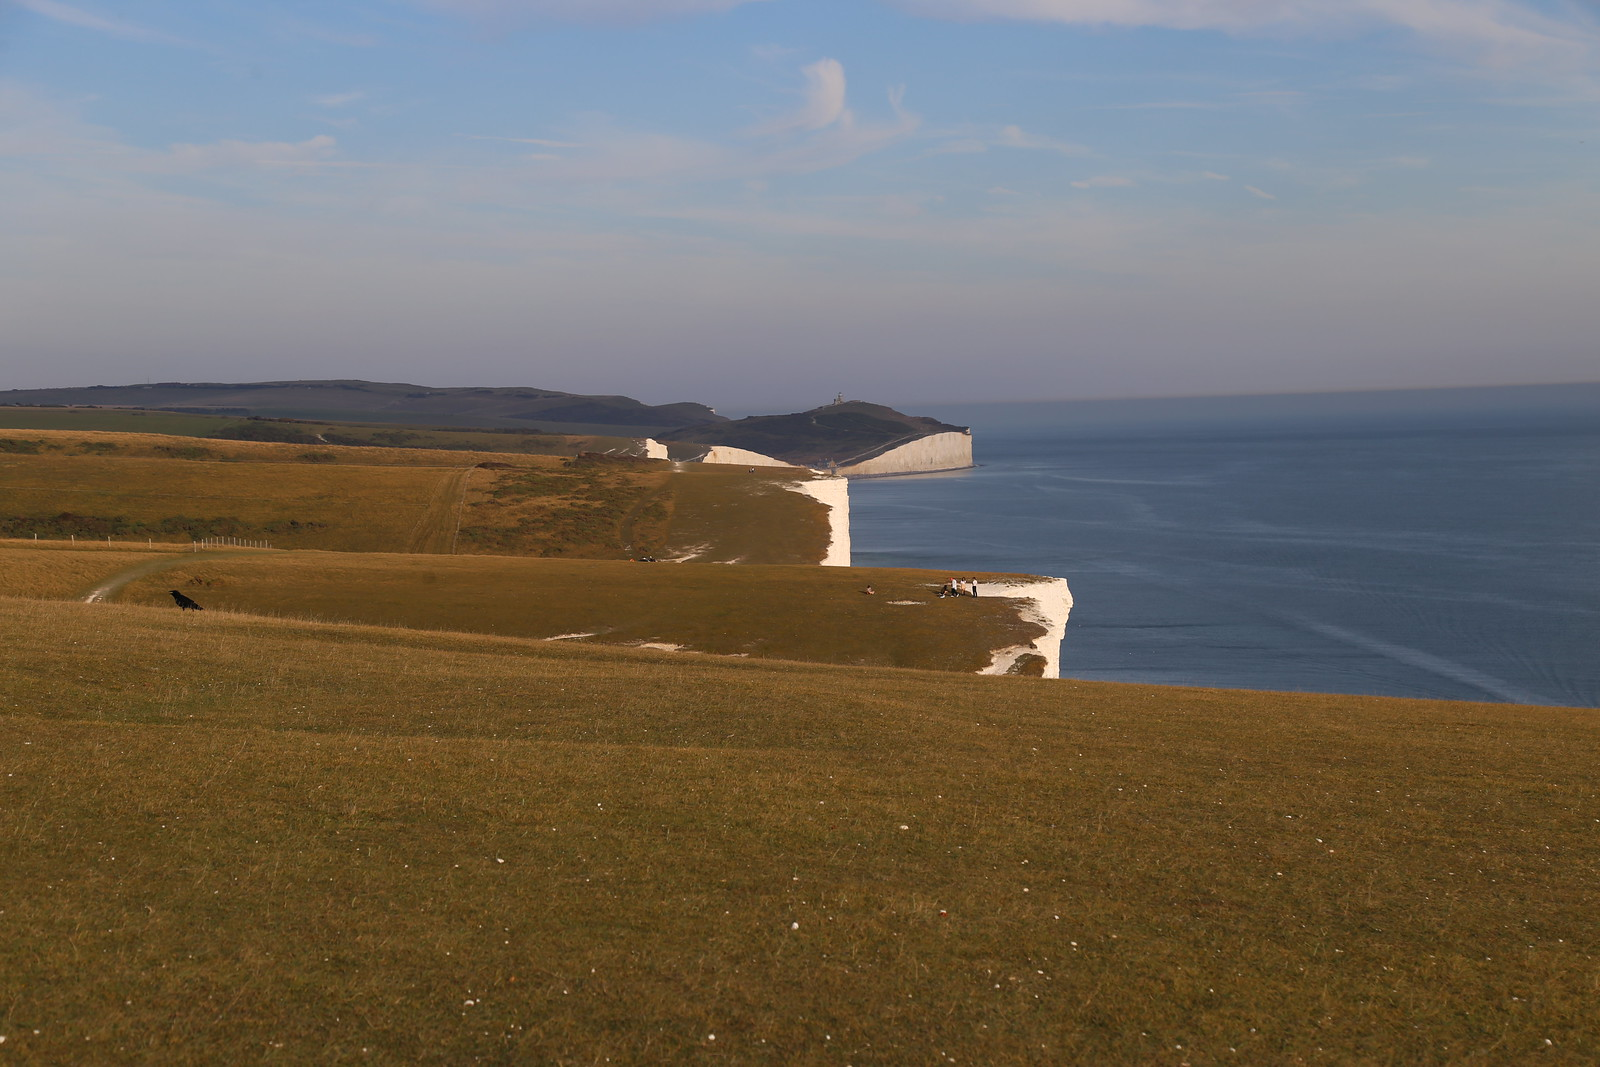 Looking out over the Seven Sisters